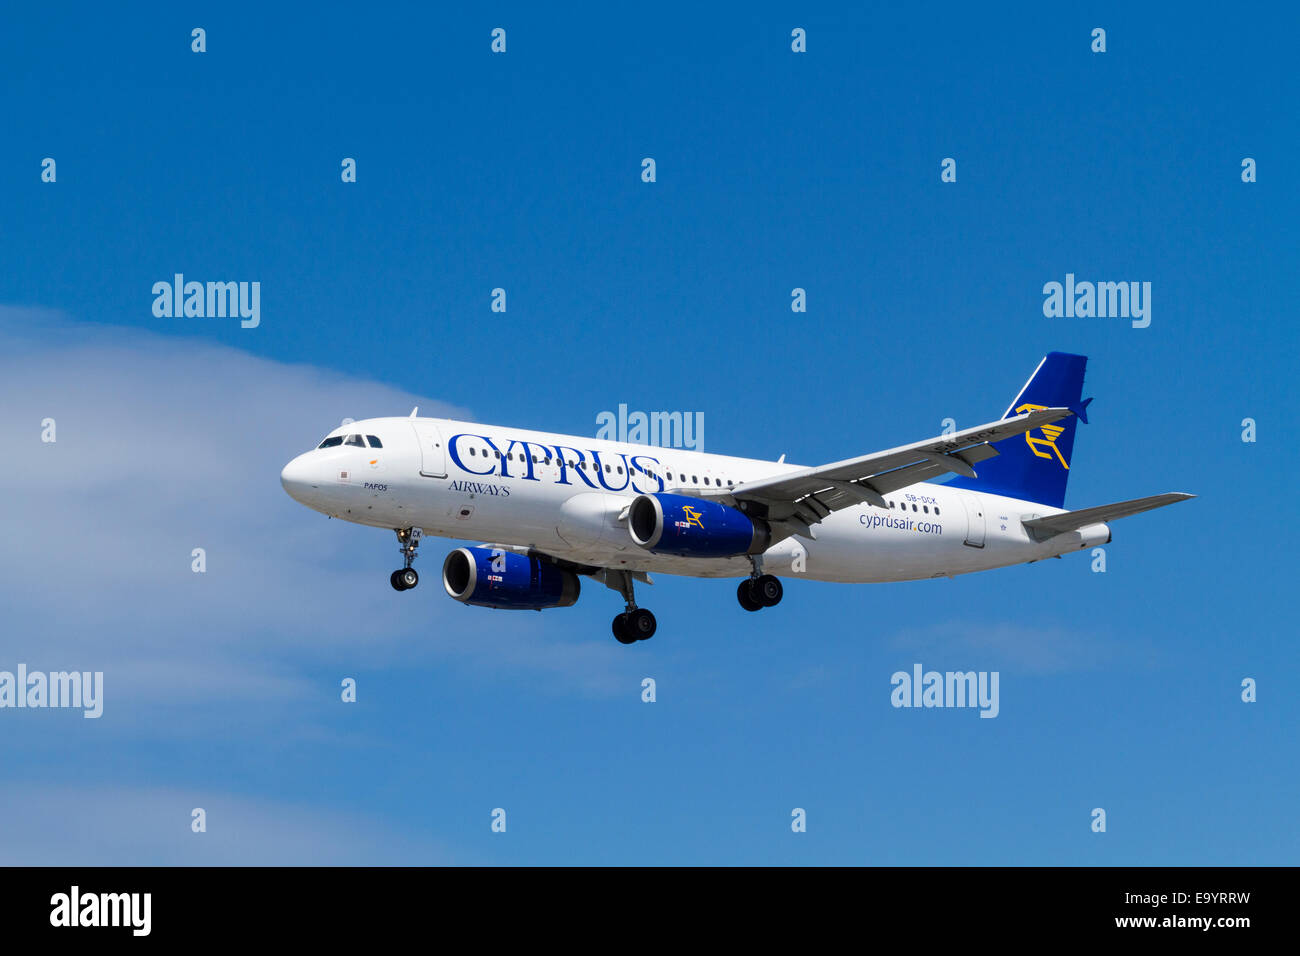 Cyprus Airways Airbus A320-200, 5B-DCK, named Pafos, on its approach for landing at London Heathrow, England, UK, - Stock Image